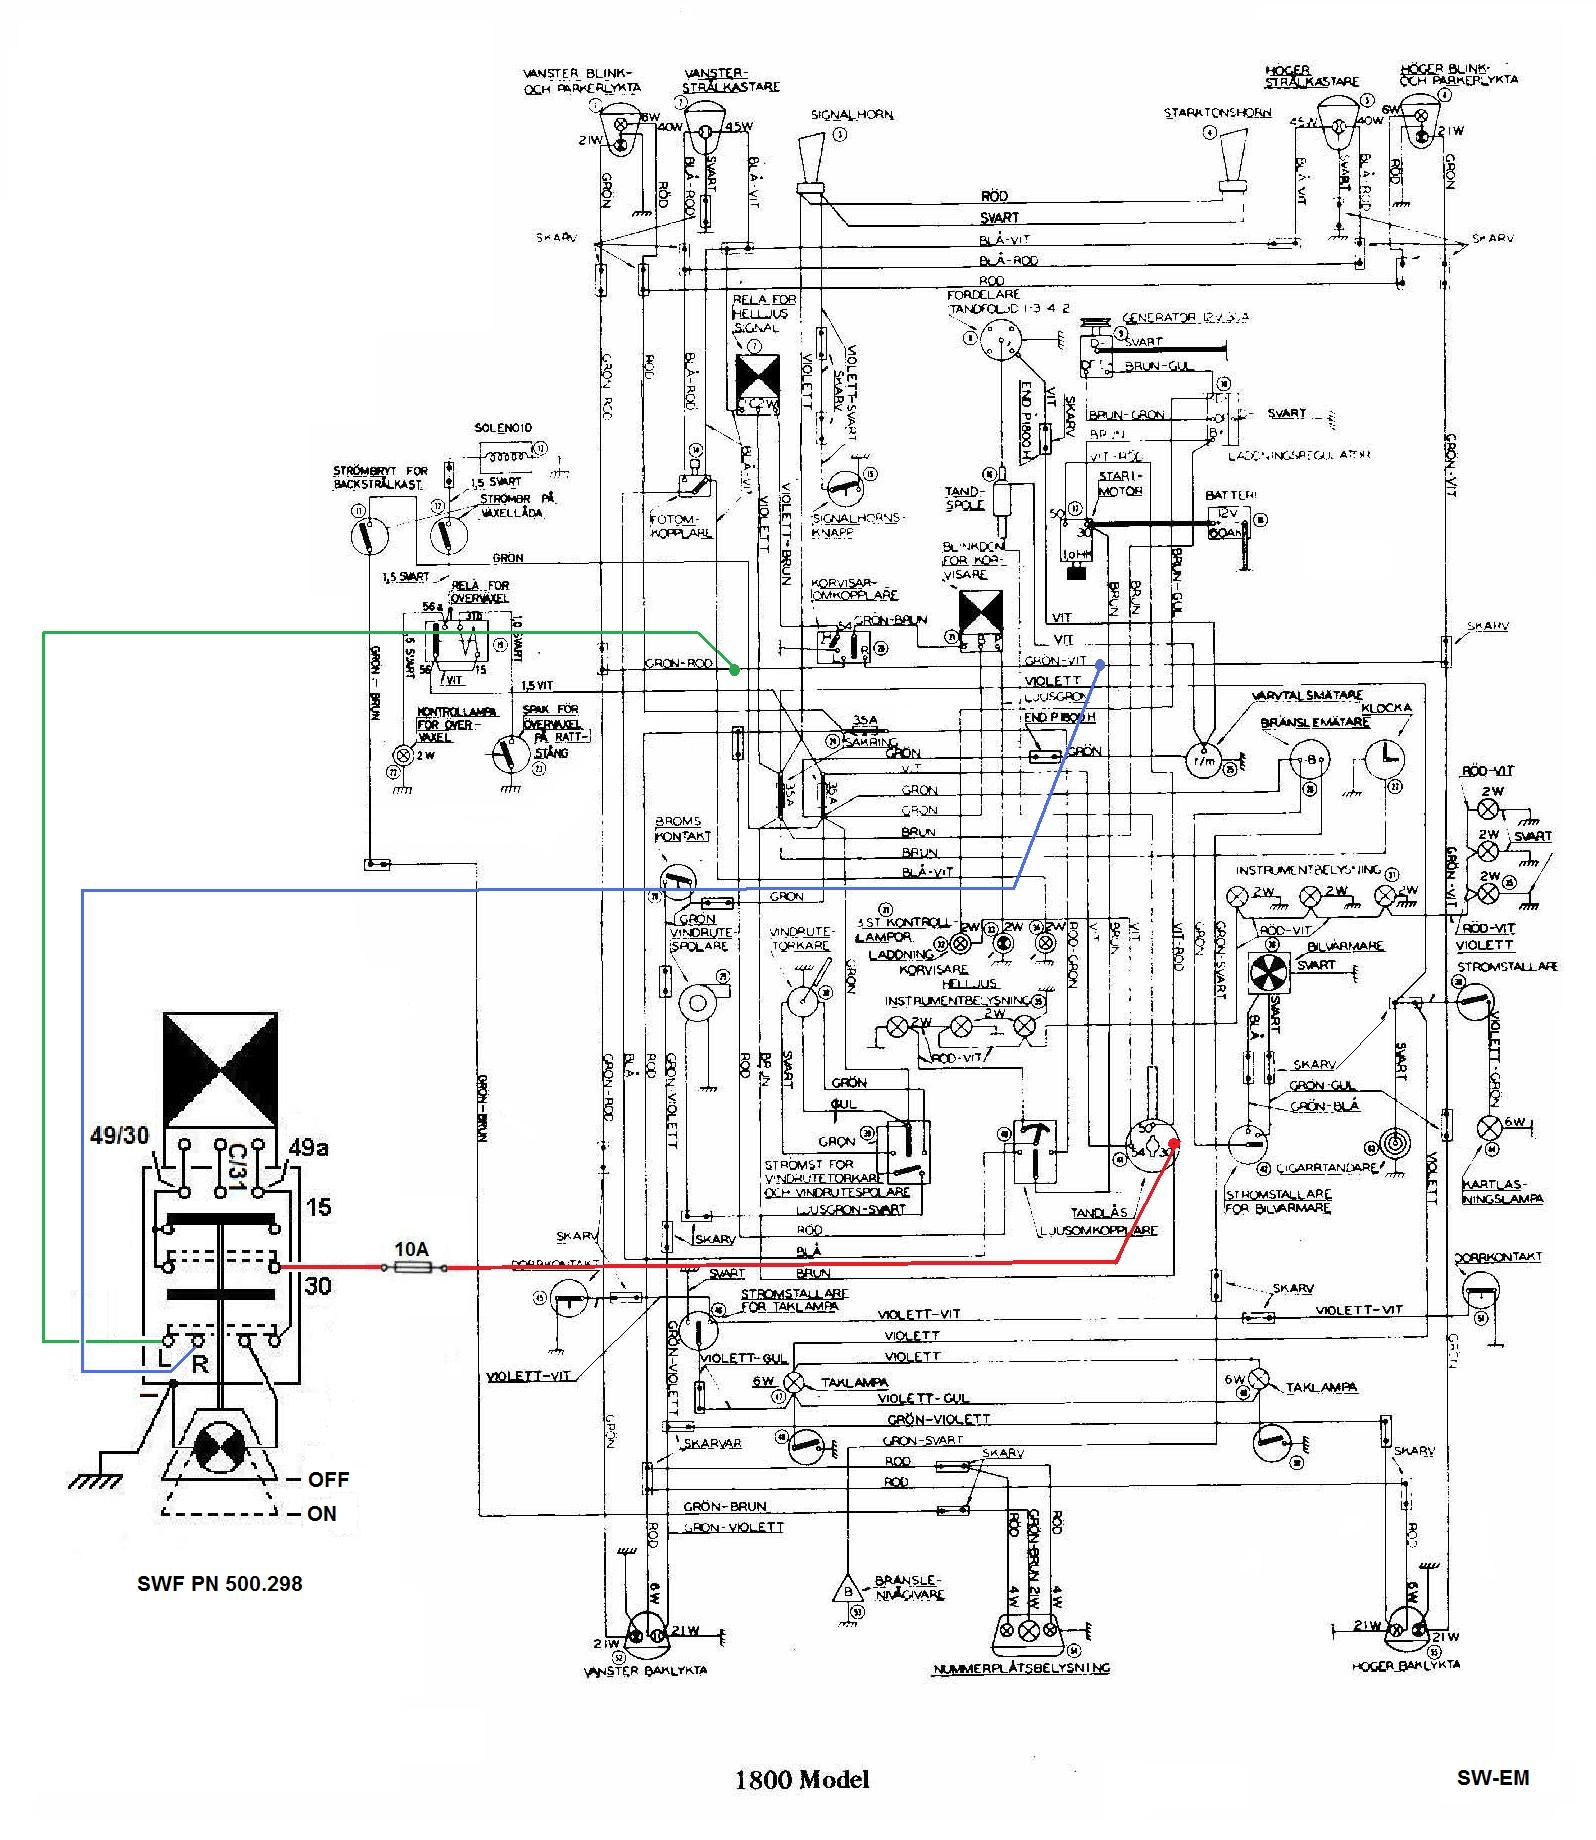 wiring diagram also ignition switch wiring diagram on 12v on off